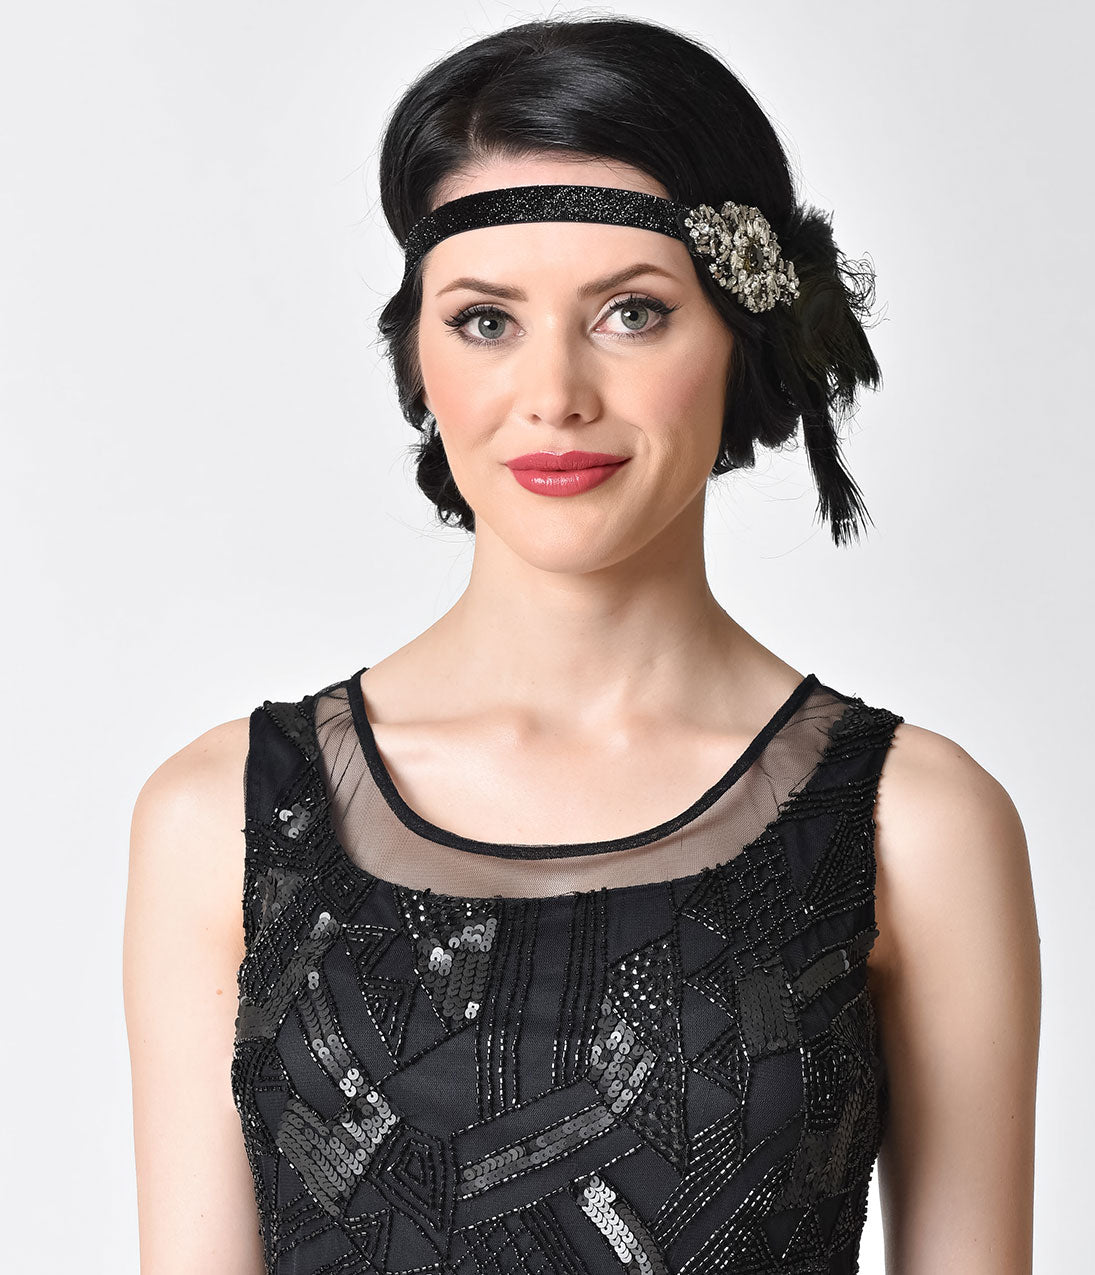 1920s Flapper Headband, Gatsby Headpiece, Wigs Unique Vintage Black  Silver Jeweled Dark Peacock Feather Headband $32.00 AT vintagedancer.com